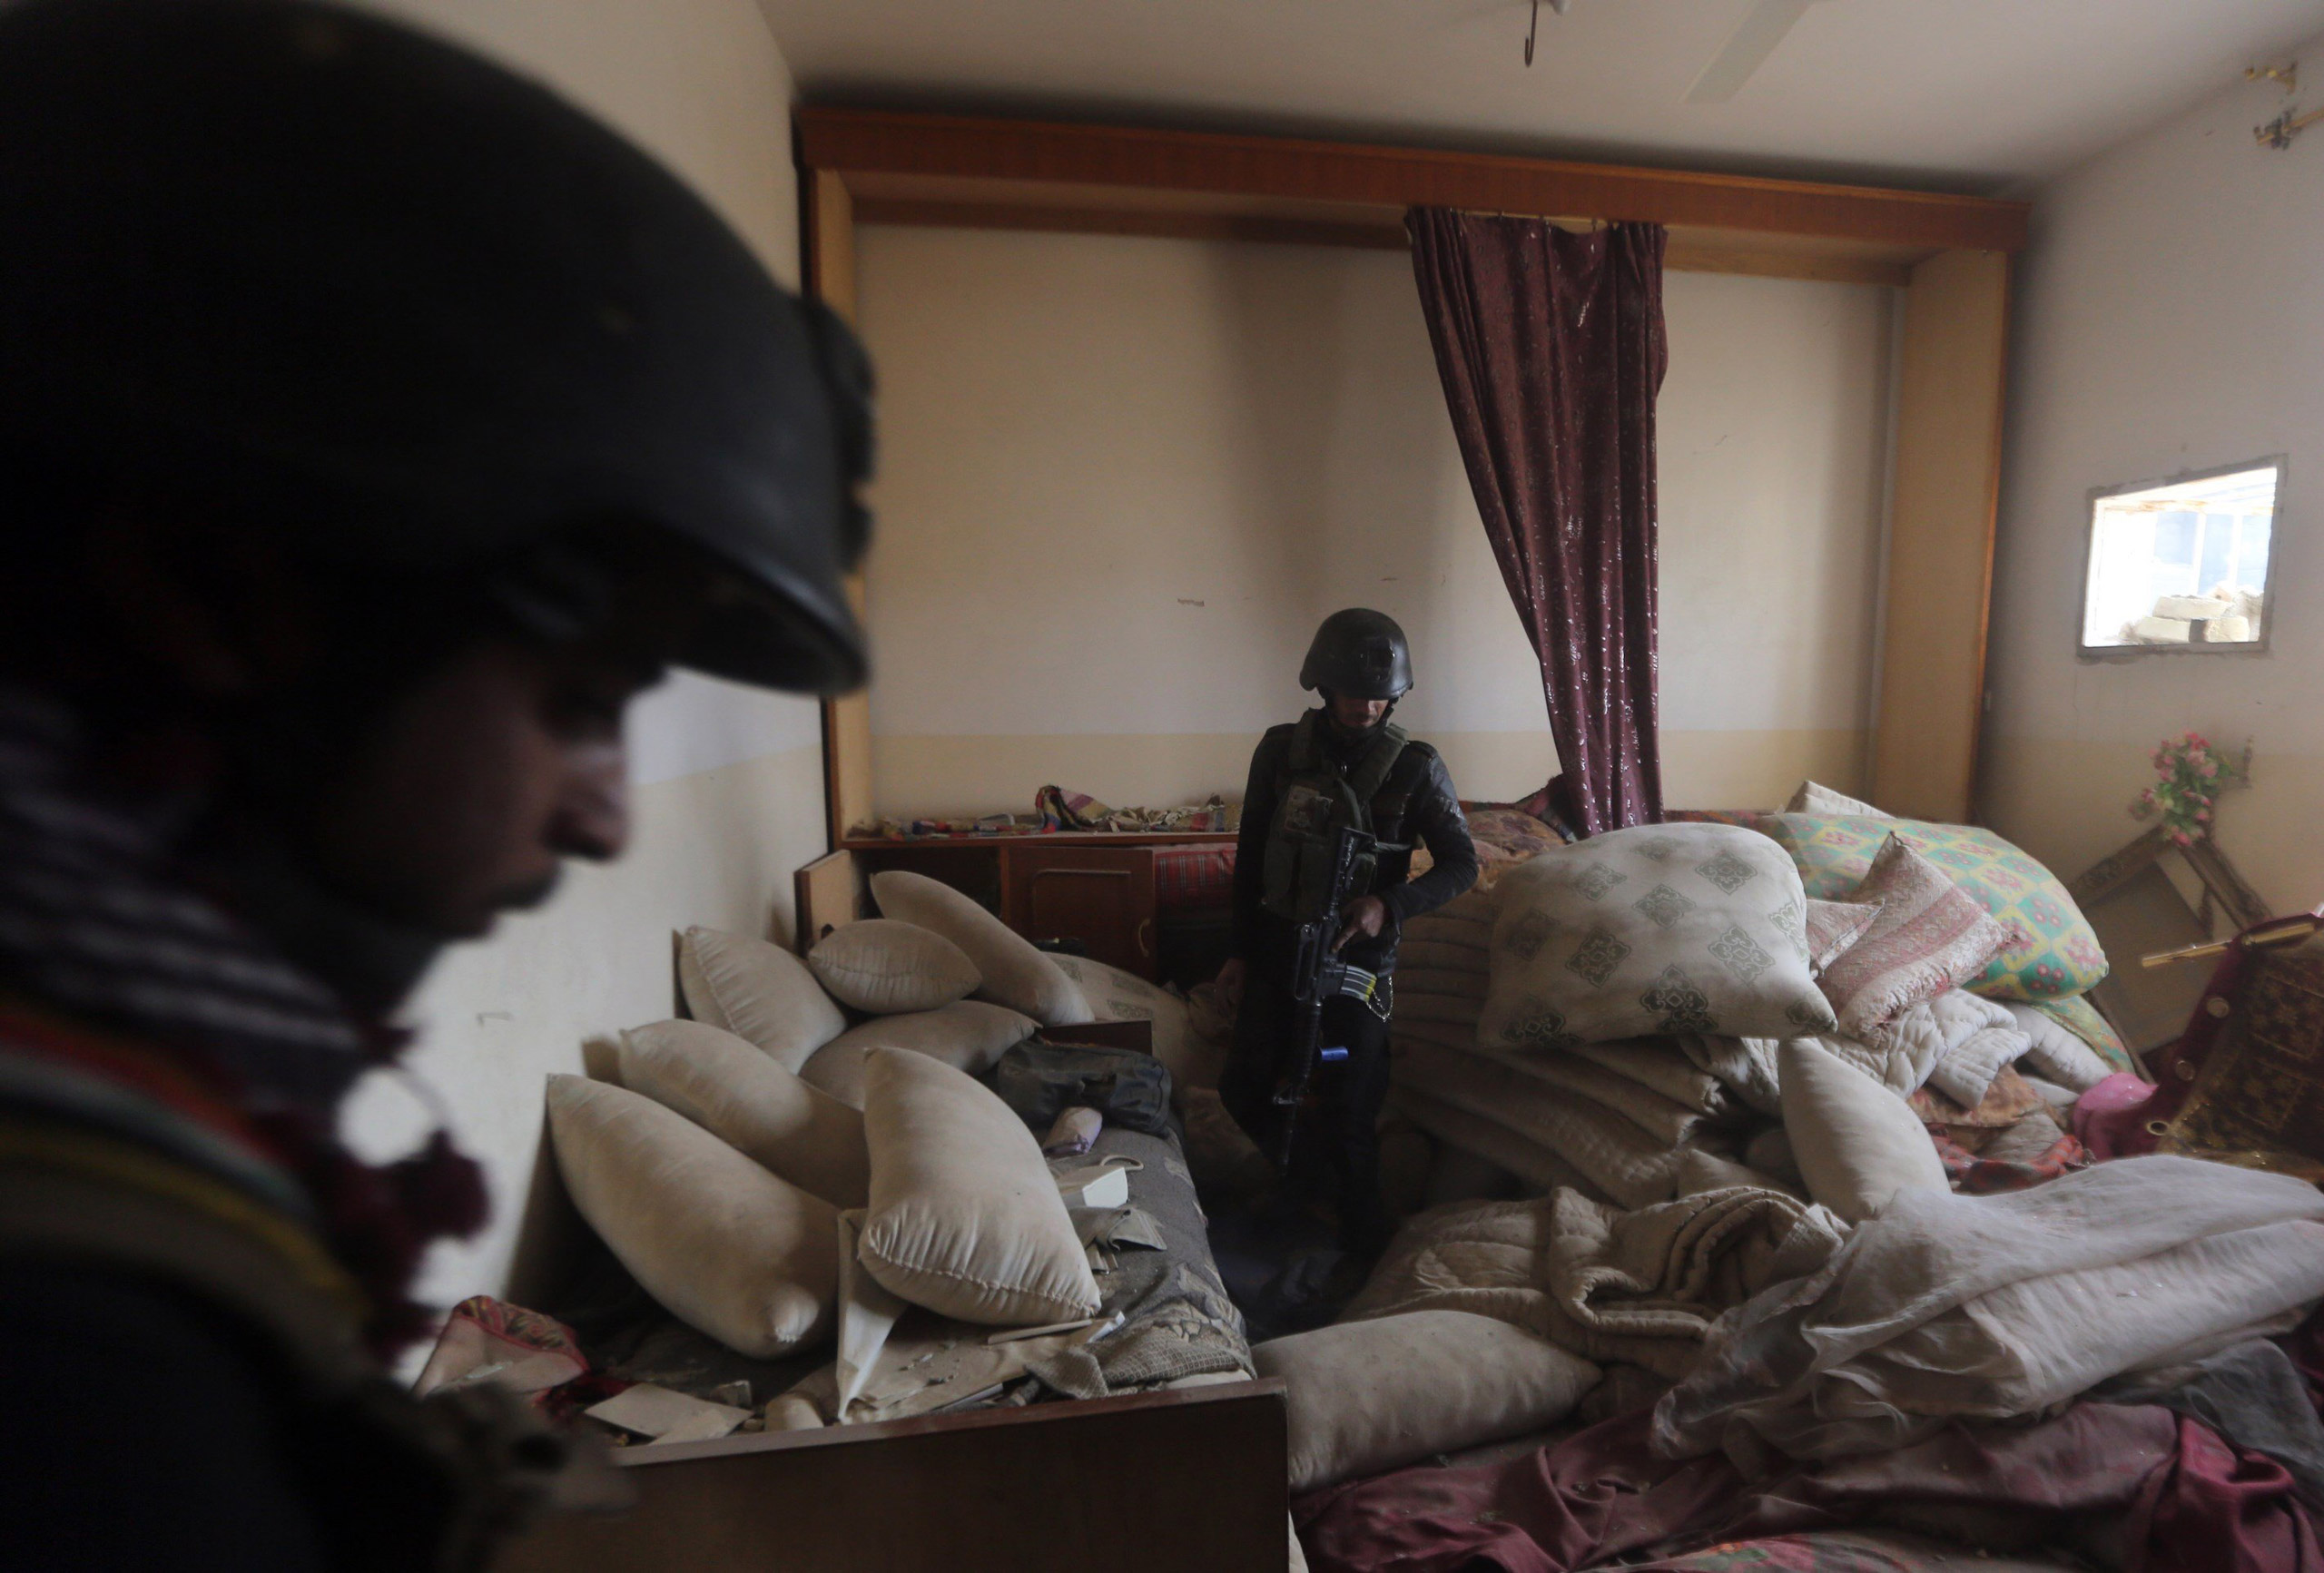 Members of Iraq's elite counter-terrorism units search a building during military operations after ISIS fighters abandoned their stronghold in Ramadi on Dec. 27, 2015.